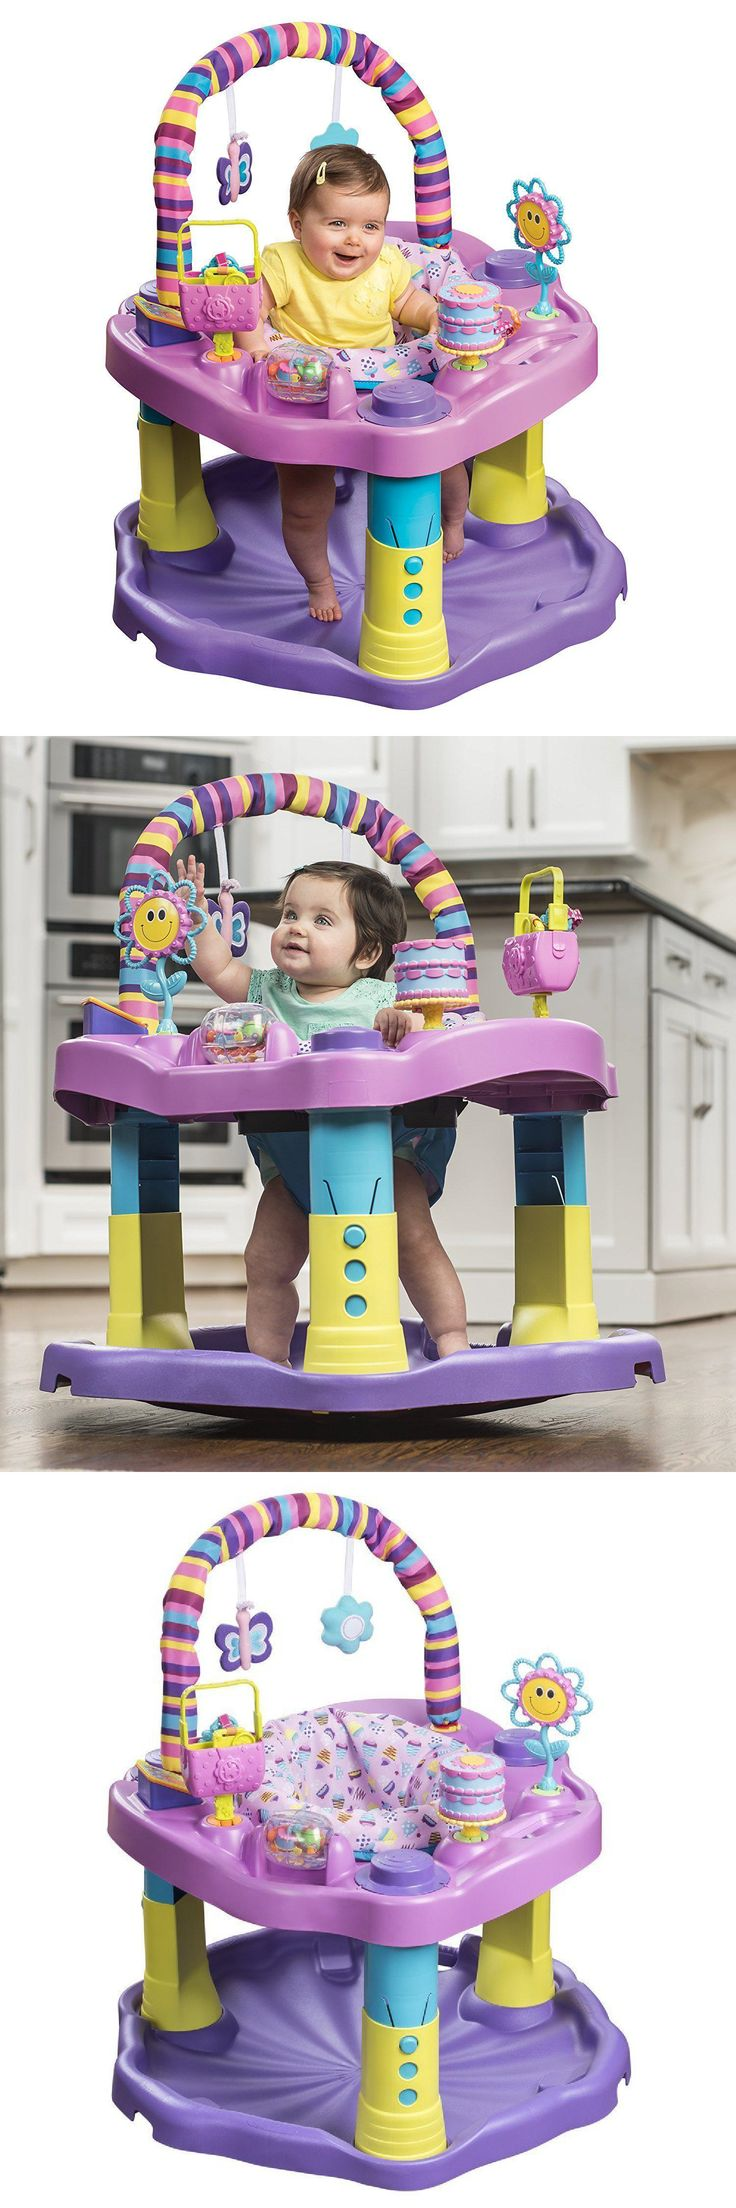 Baby Jumping Exercisers 117032: Baby Activity Center Exersaucer Jumper Infant -> BUY IT NOW ONLY: $58.39 on eBay!